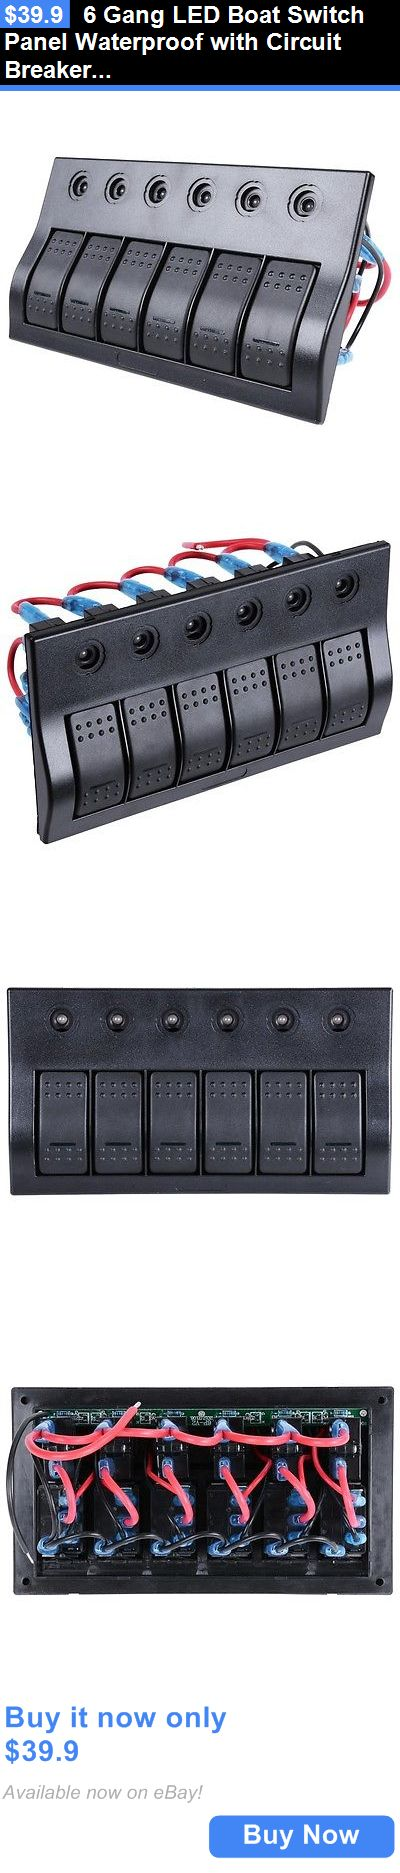 boat parts: 6 Gang Led Boat Switch Panel Waterproof With Circuit Breaker Aluminum For Marine BUY IT NOW ONLY: $39.9